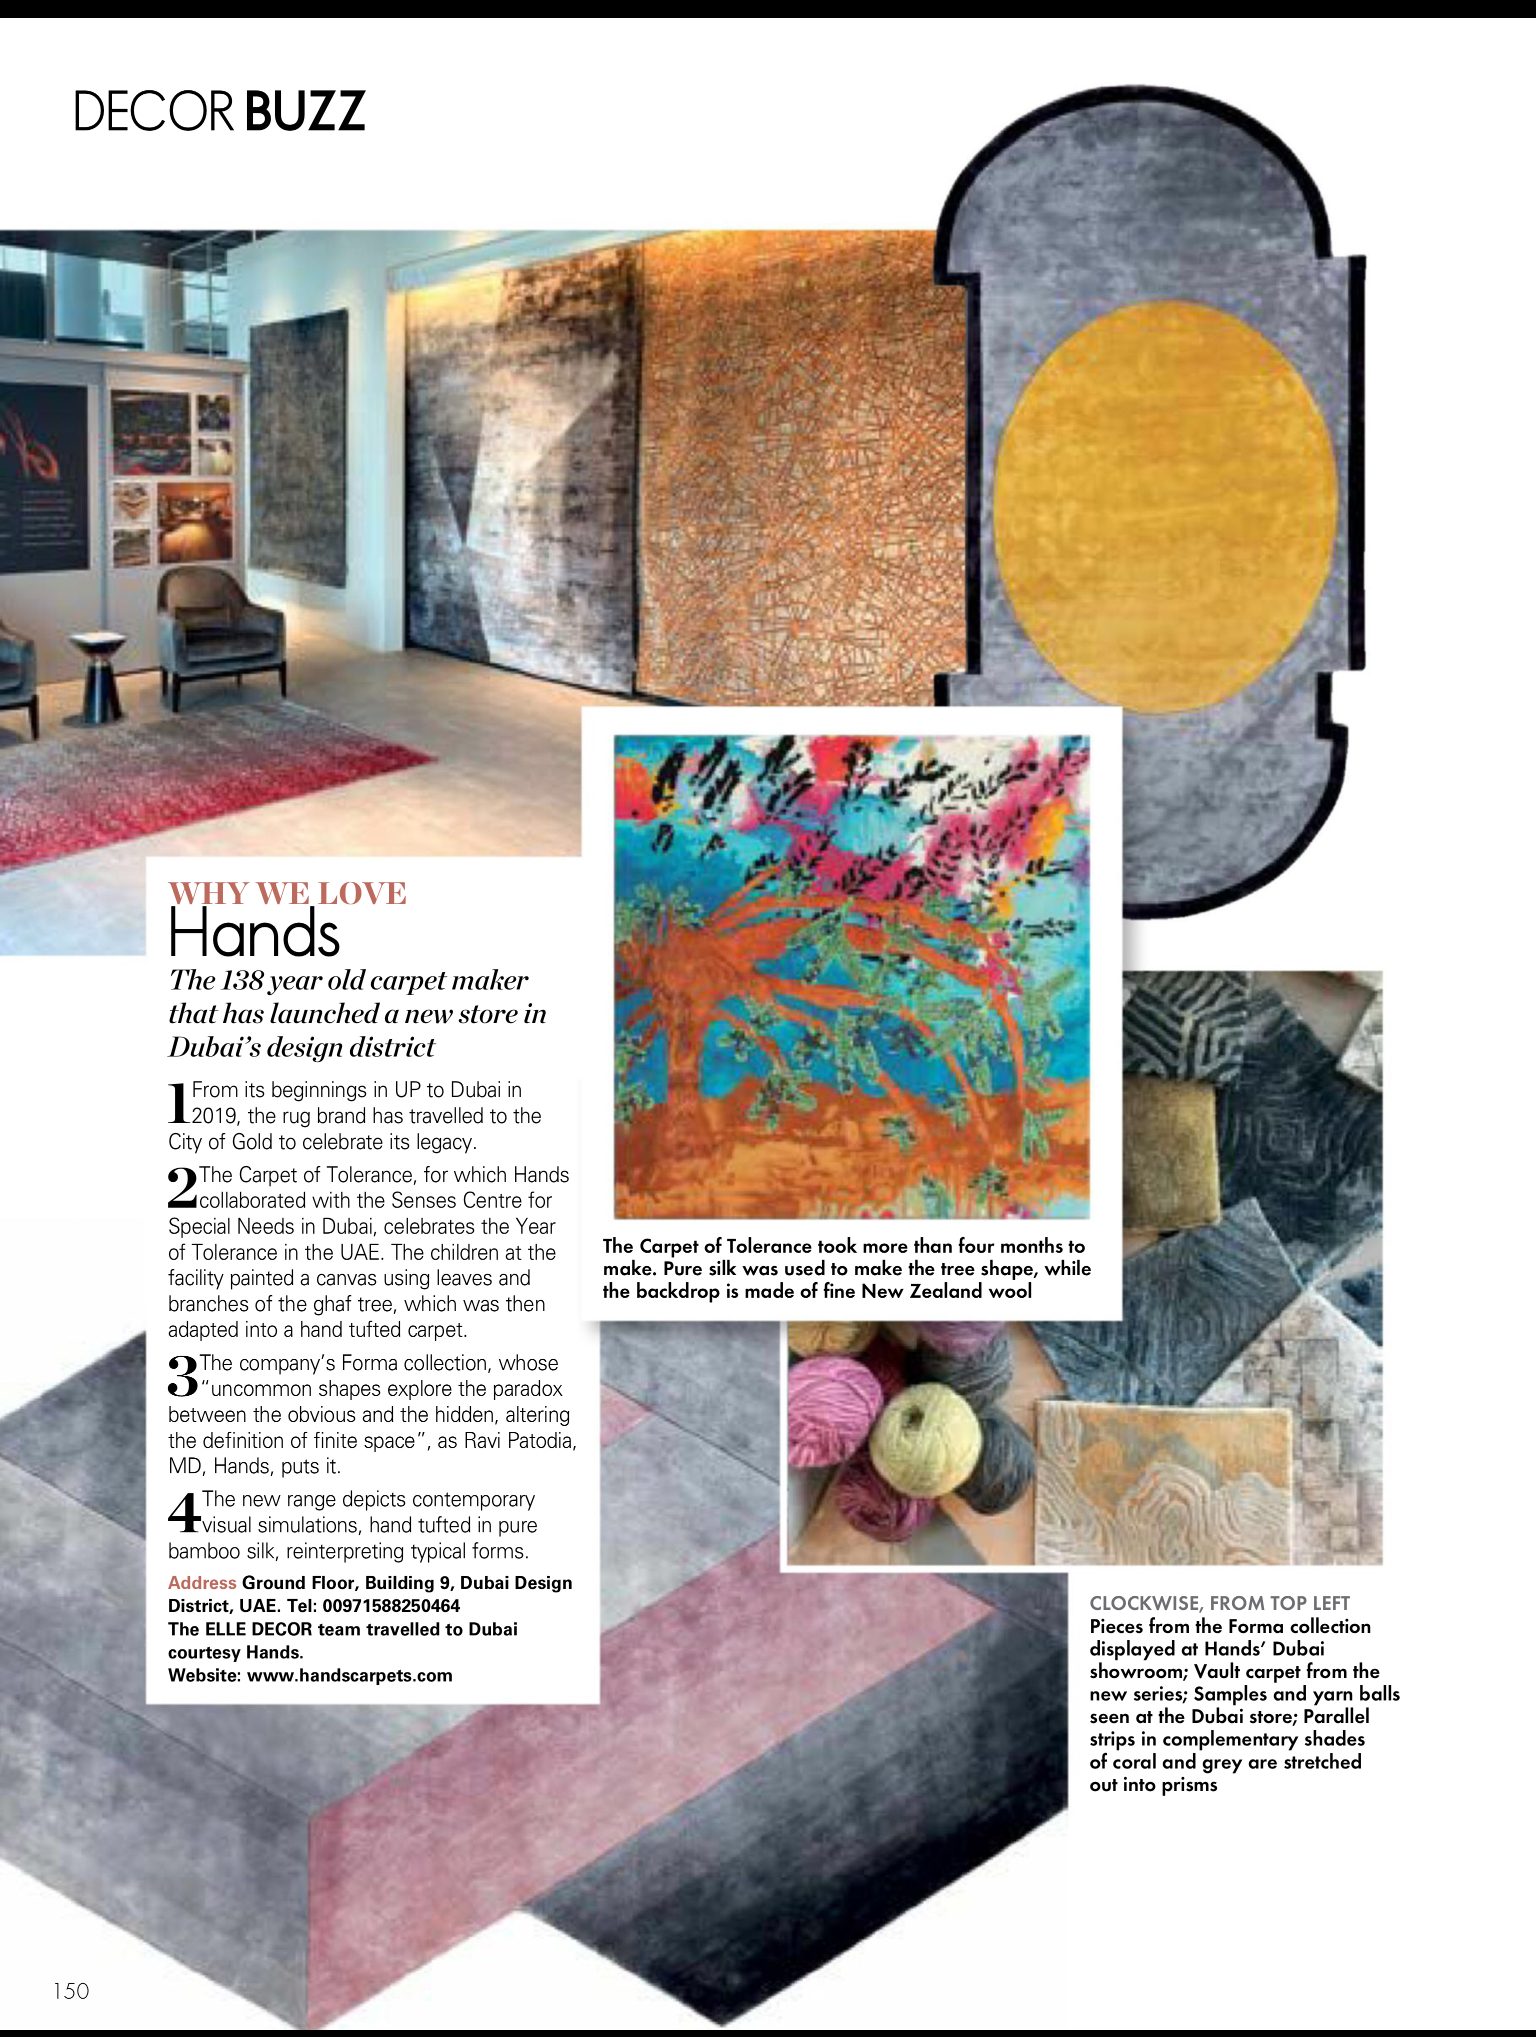 Hands - Elle Decor - Dec-Jan 2